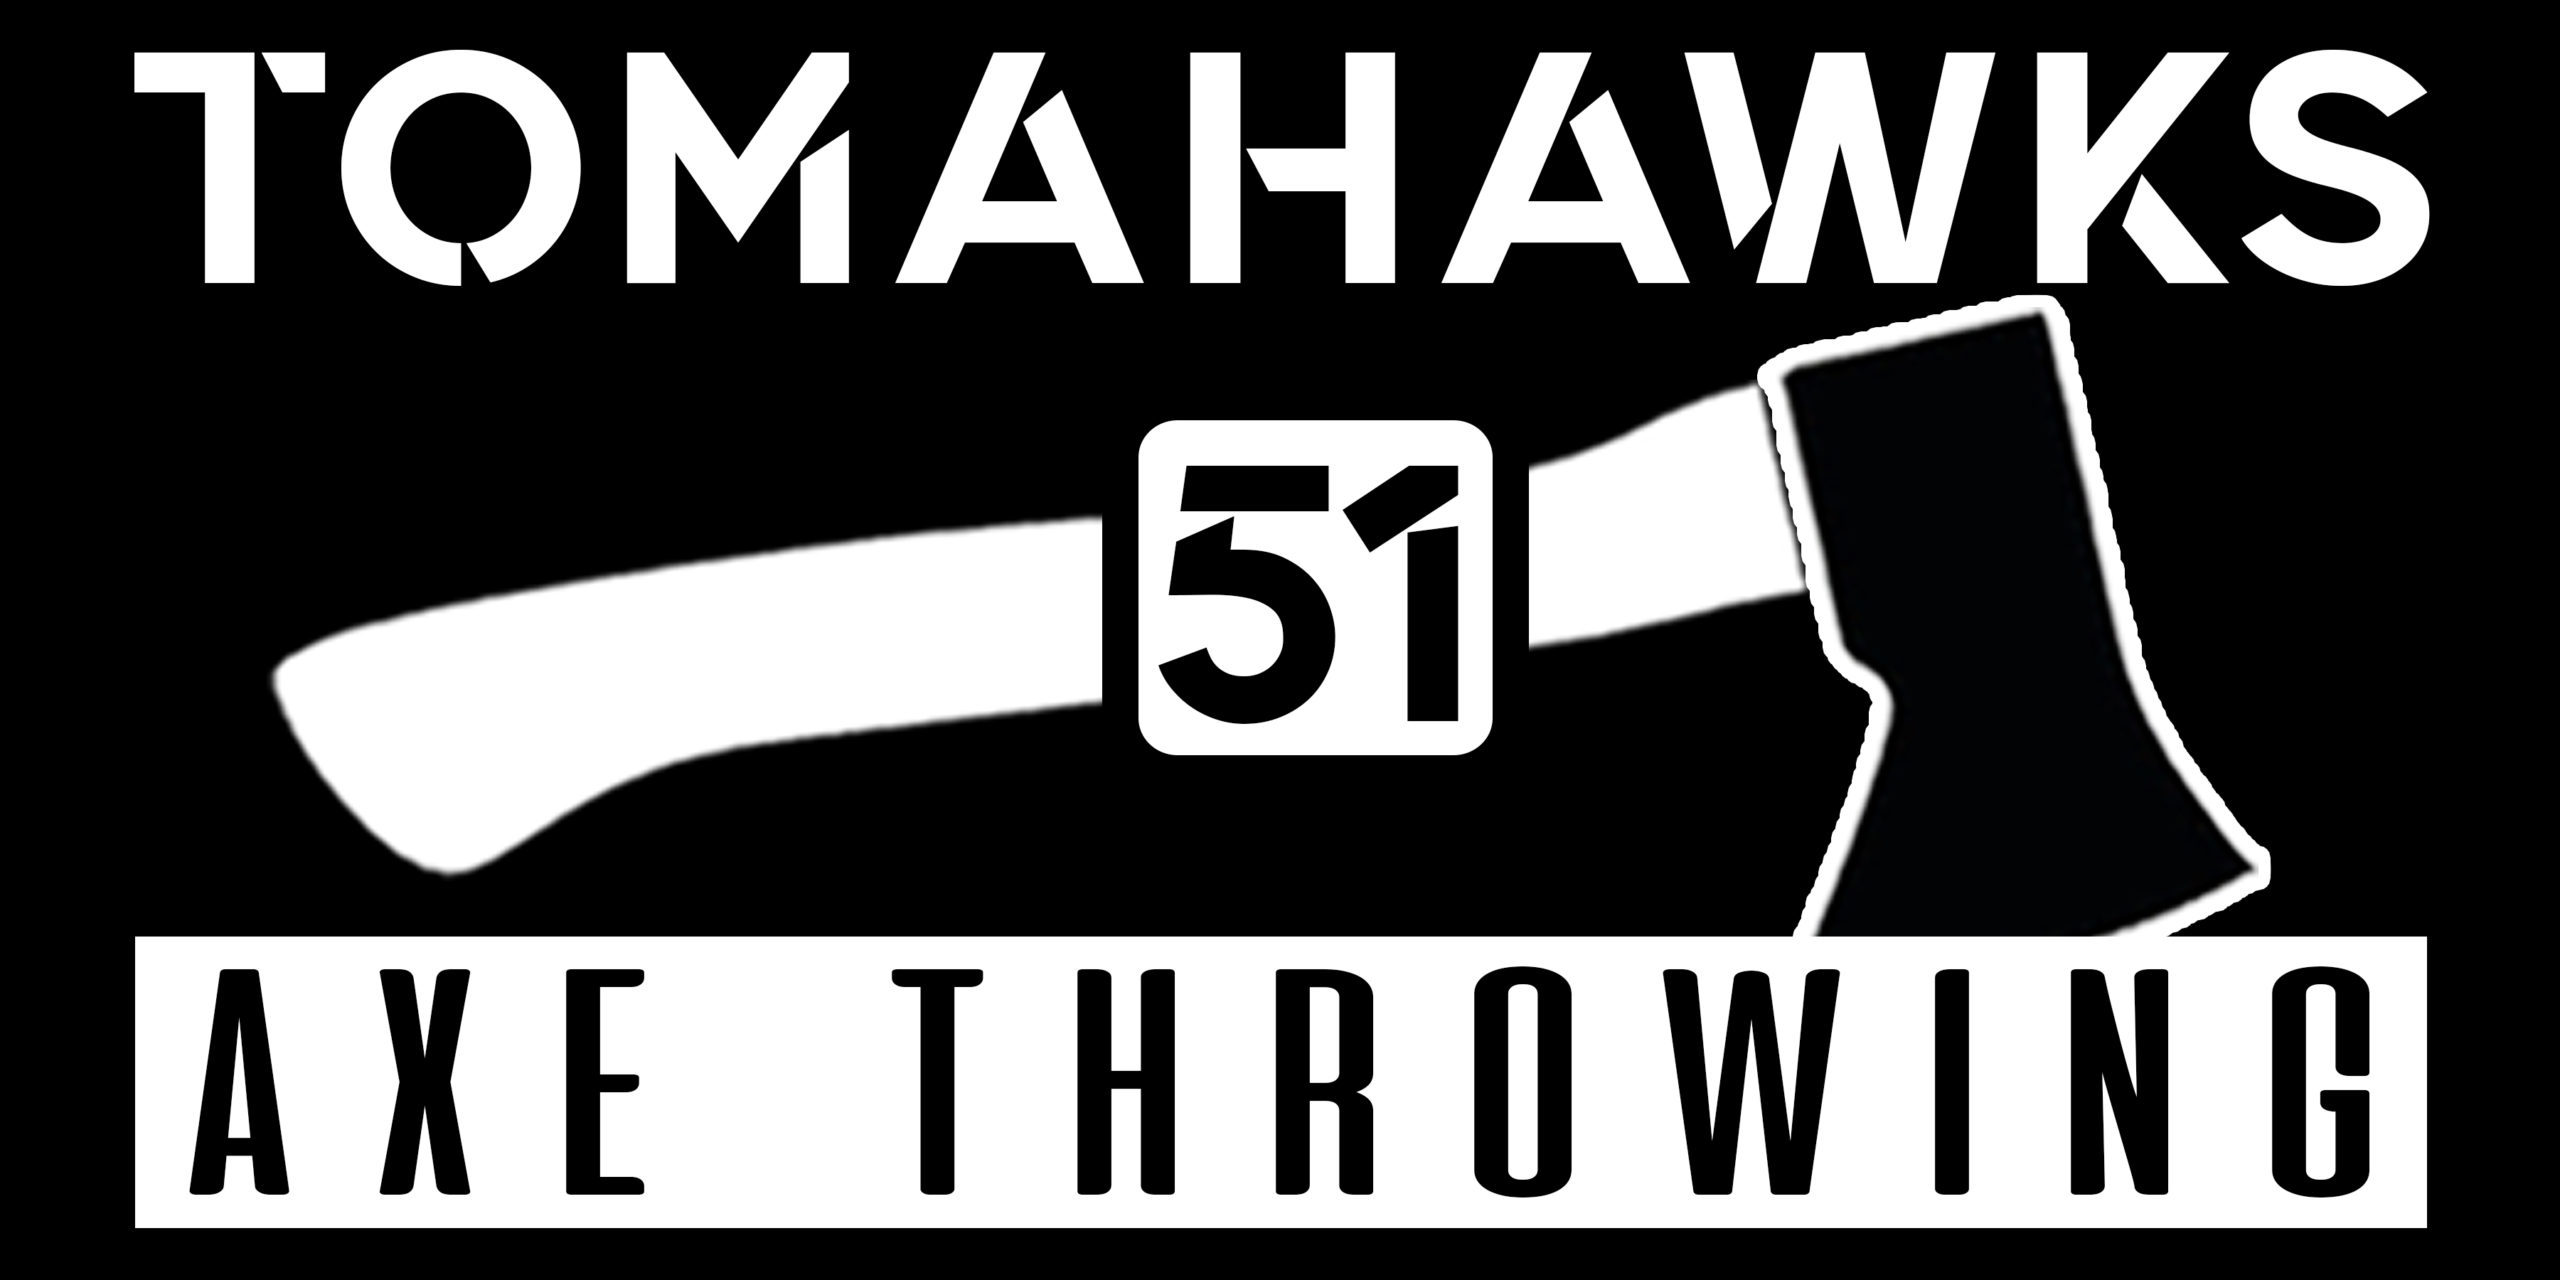 Tomahawks 51 – Axe Throwing